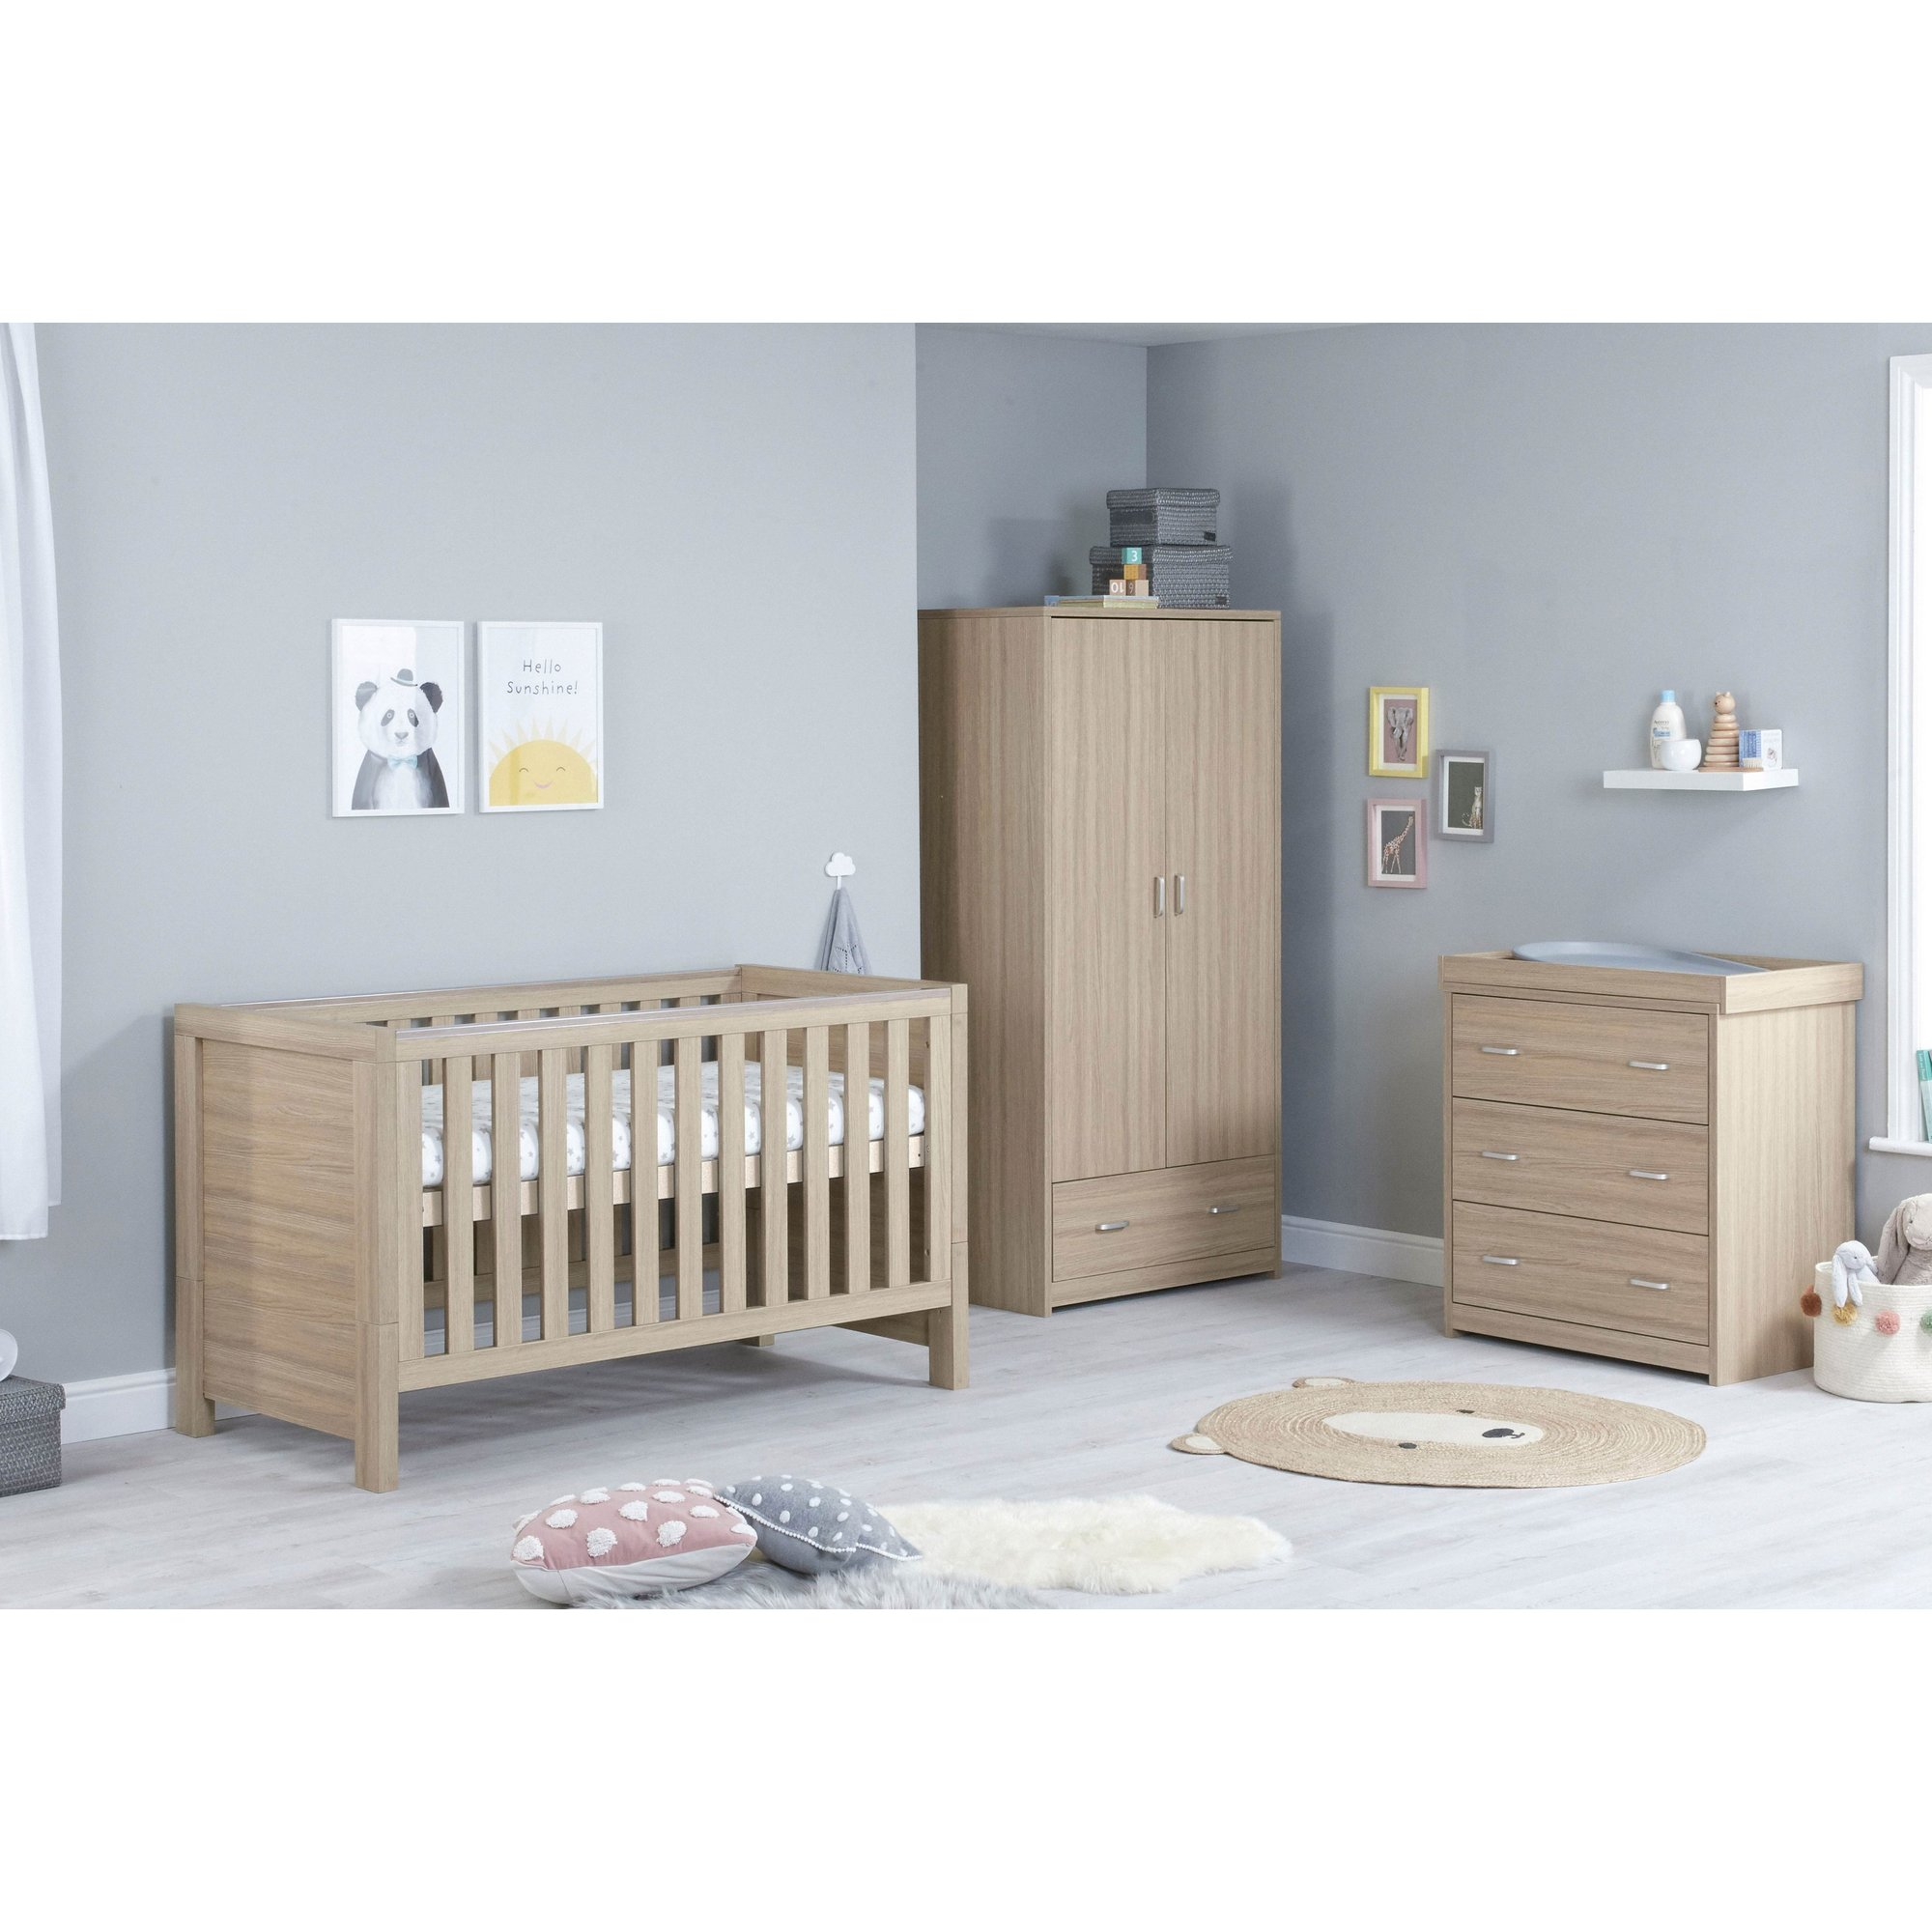 Image of 3 Piece Luno Oak Room Cot Bed Chest and Wardrobe